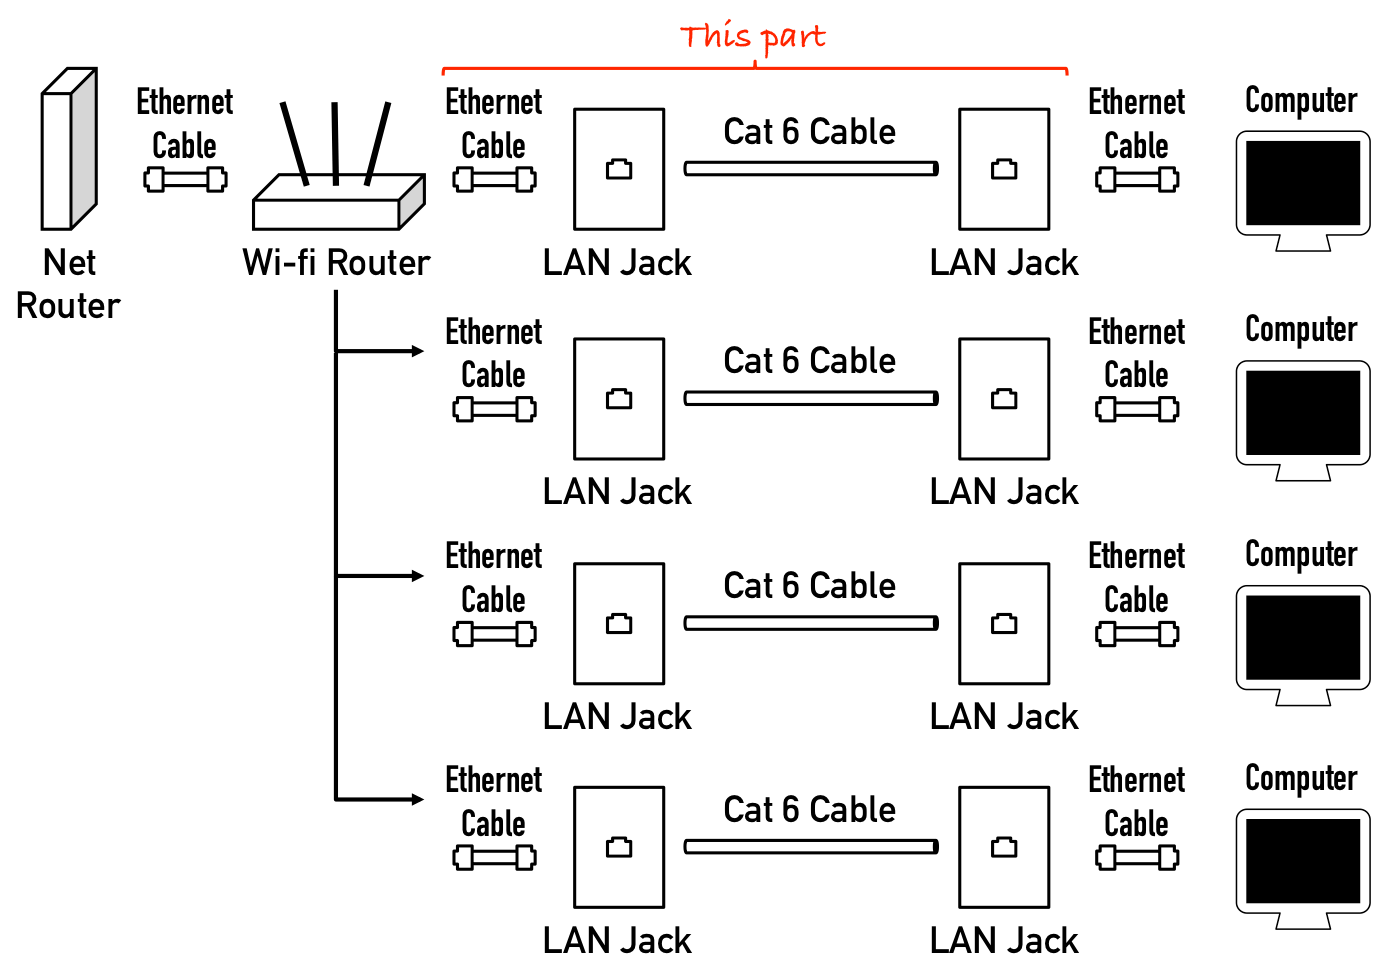 Cat5 Wall Schematic Wiring Diagram Cabling How Do I Run Wired Internet From A Single Router